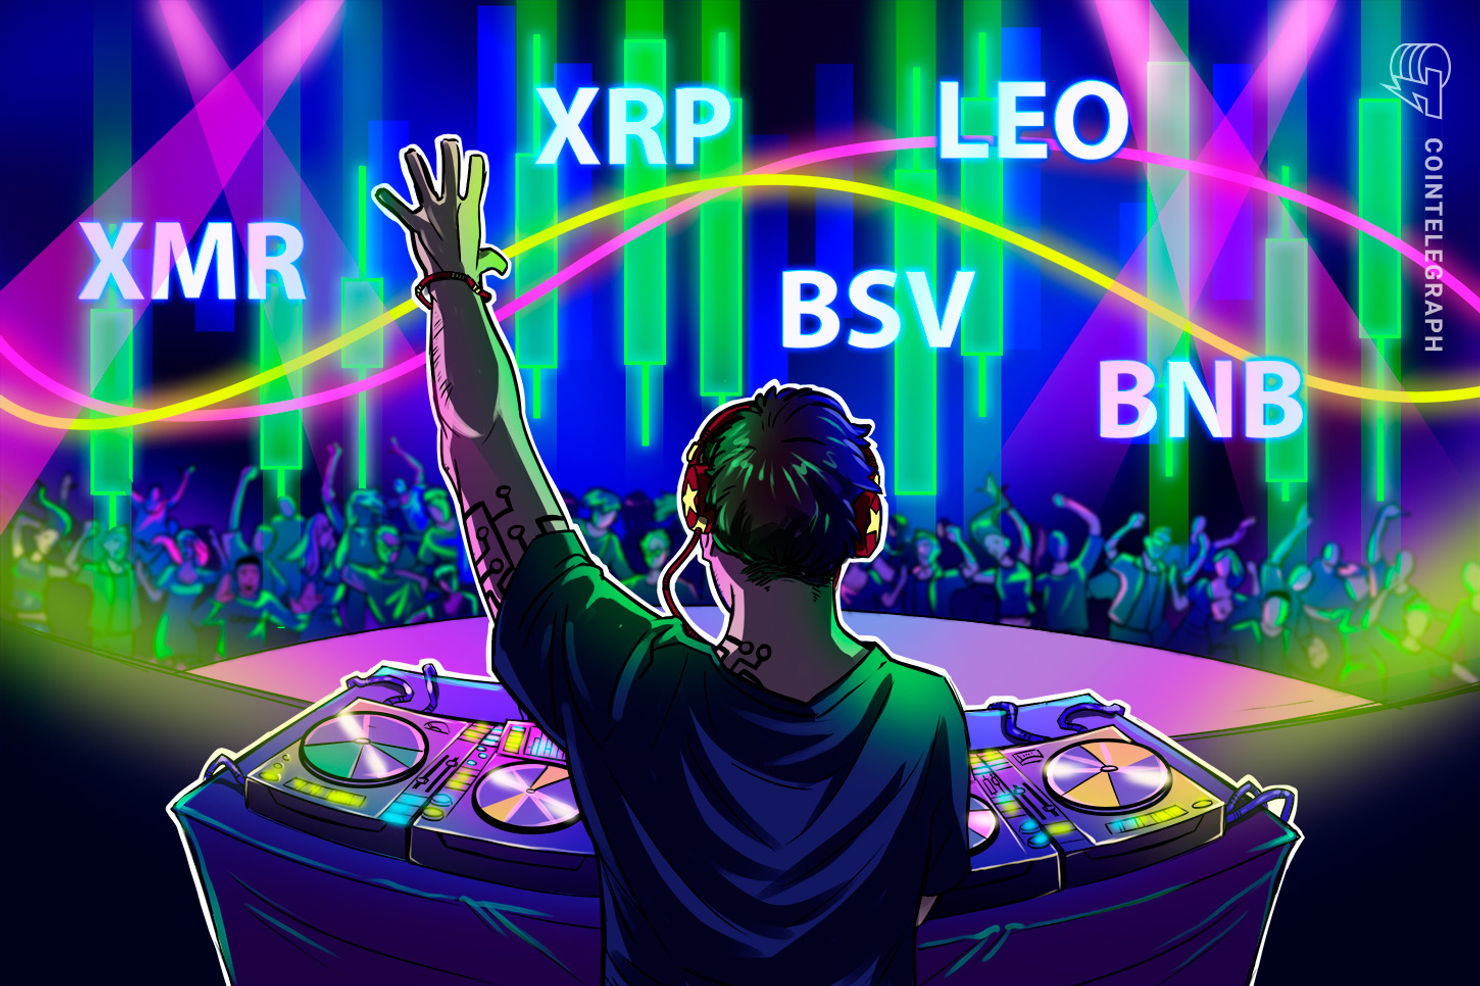 Top-5 Cryptos This Week: XMR, XRP, BSV, LEO, BNB